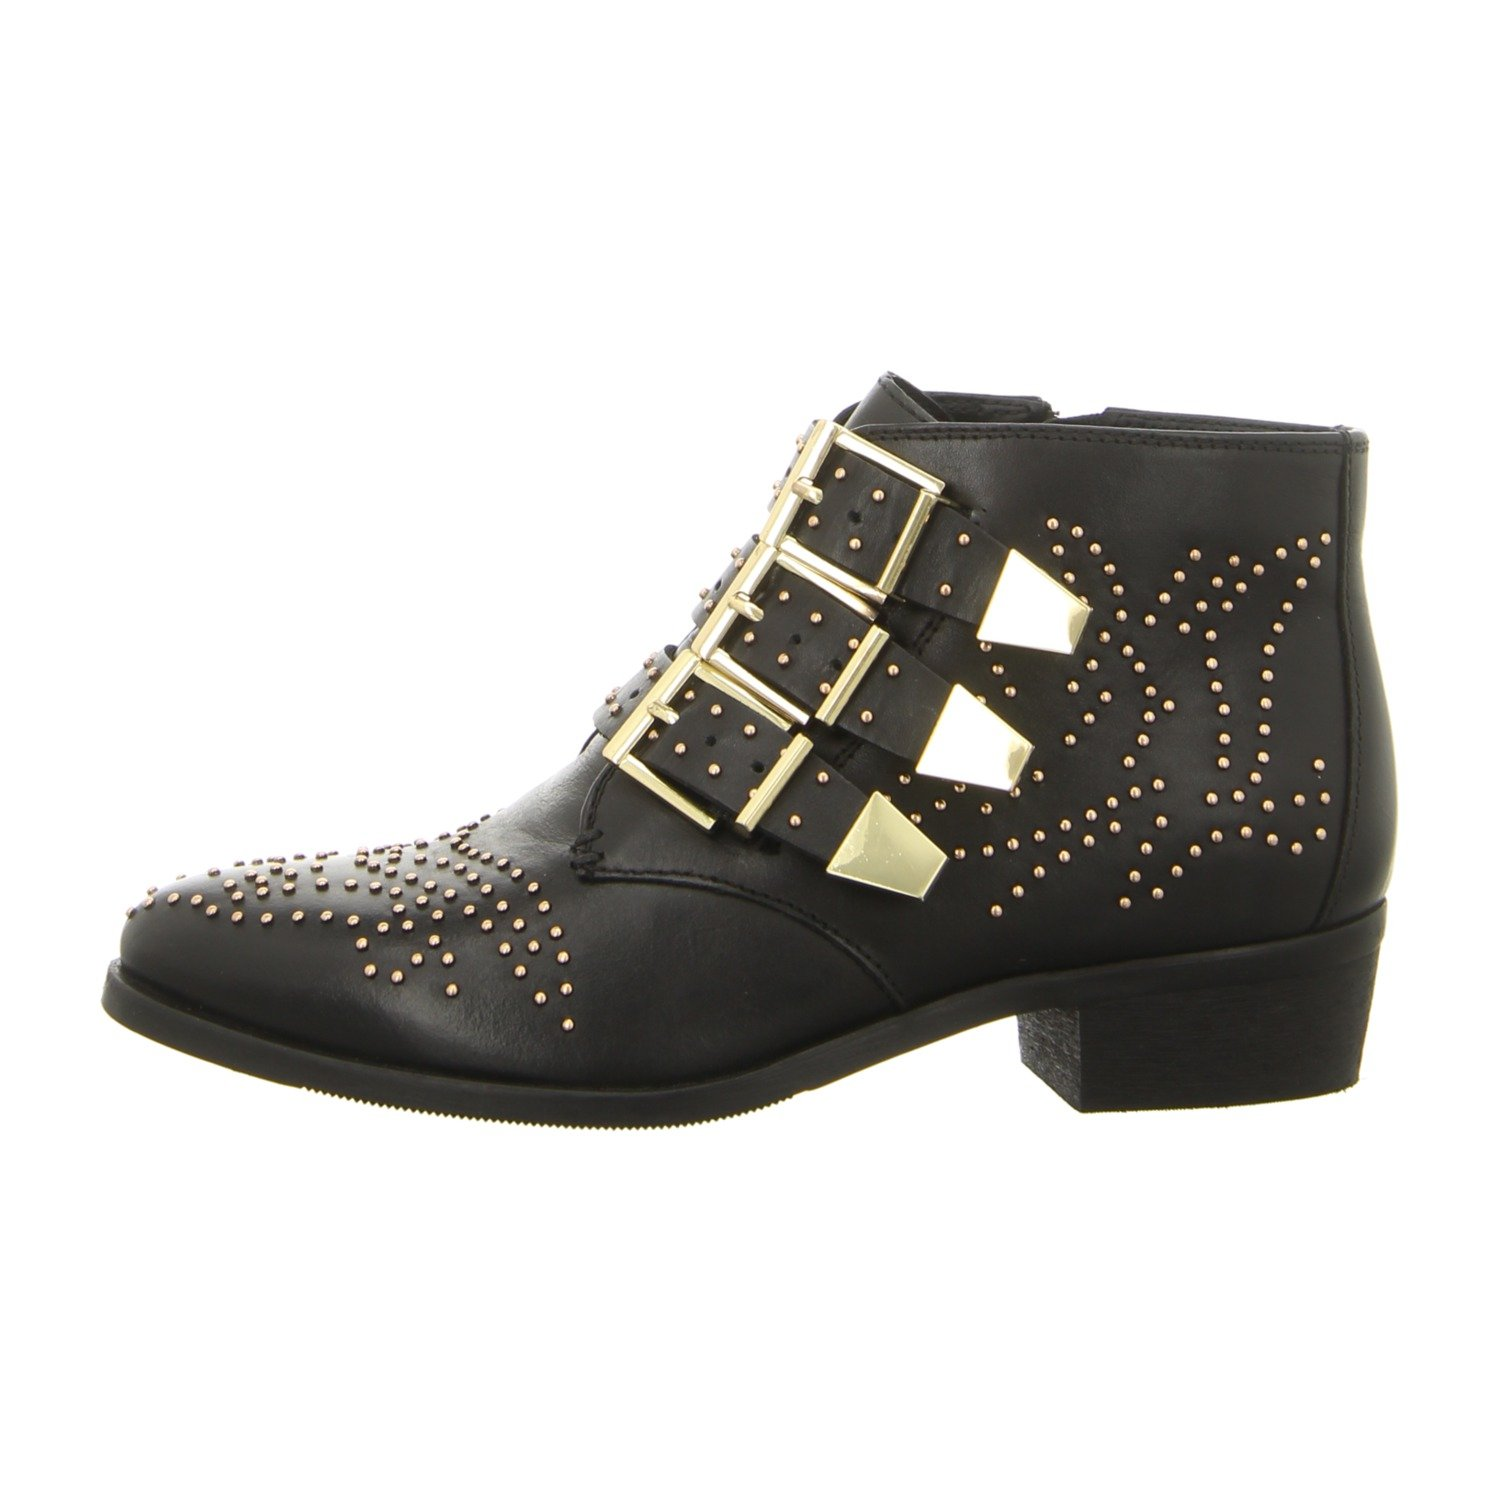 Chaussures Canguro noires Fashion fille